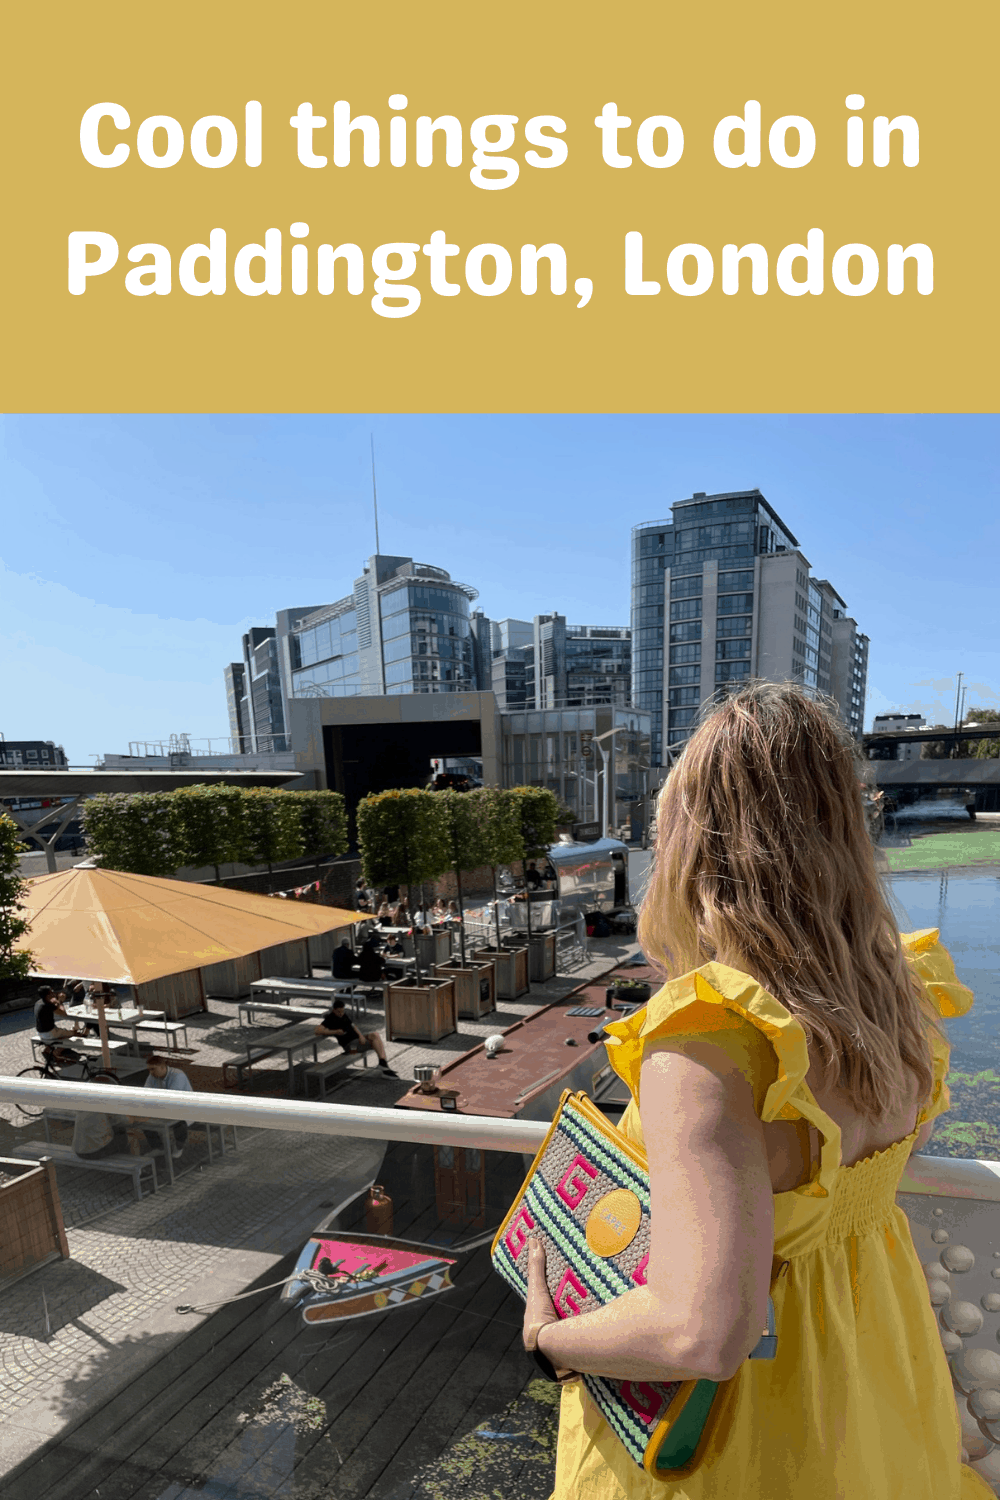 Cool things to do in Paddington in London